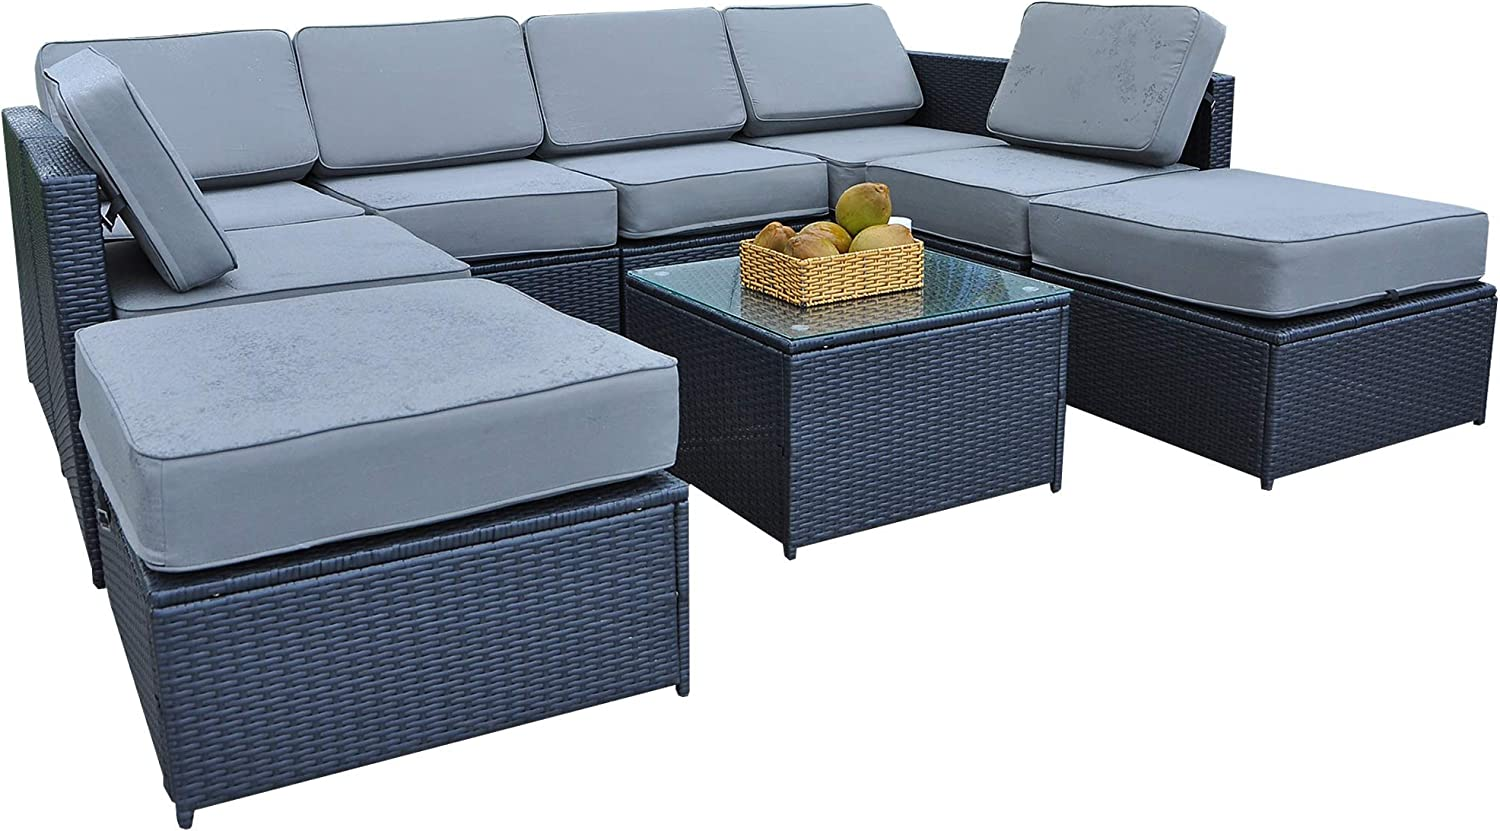 Mcombo Patio Furniture Sectional Wicker Sofa Set All-Weather Outdoor Black Rattan Conversation Chair Set with Thick Cushions 5.12Inch and Tea Table Black 6085-1009EY